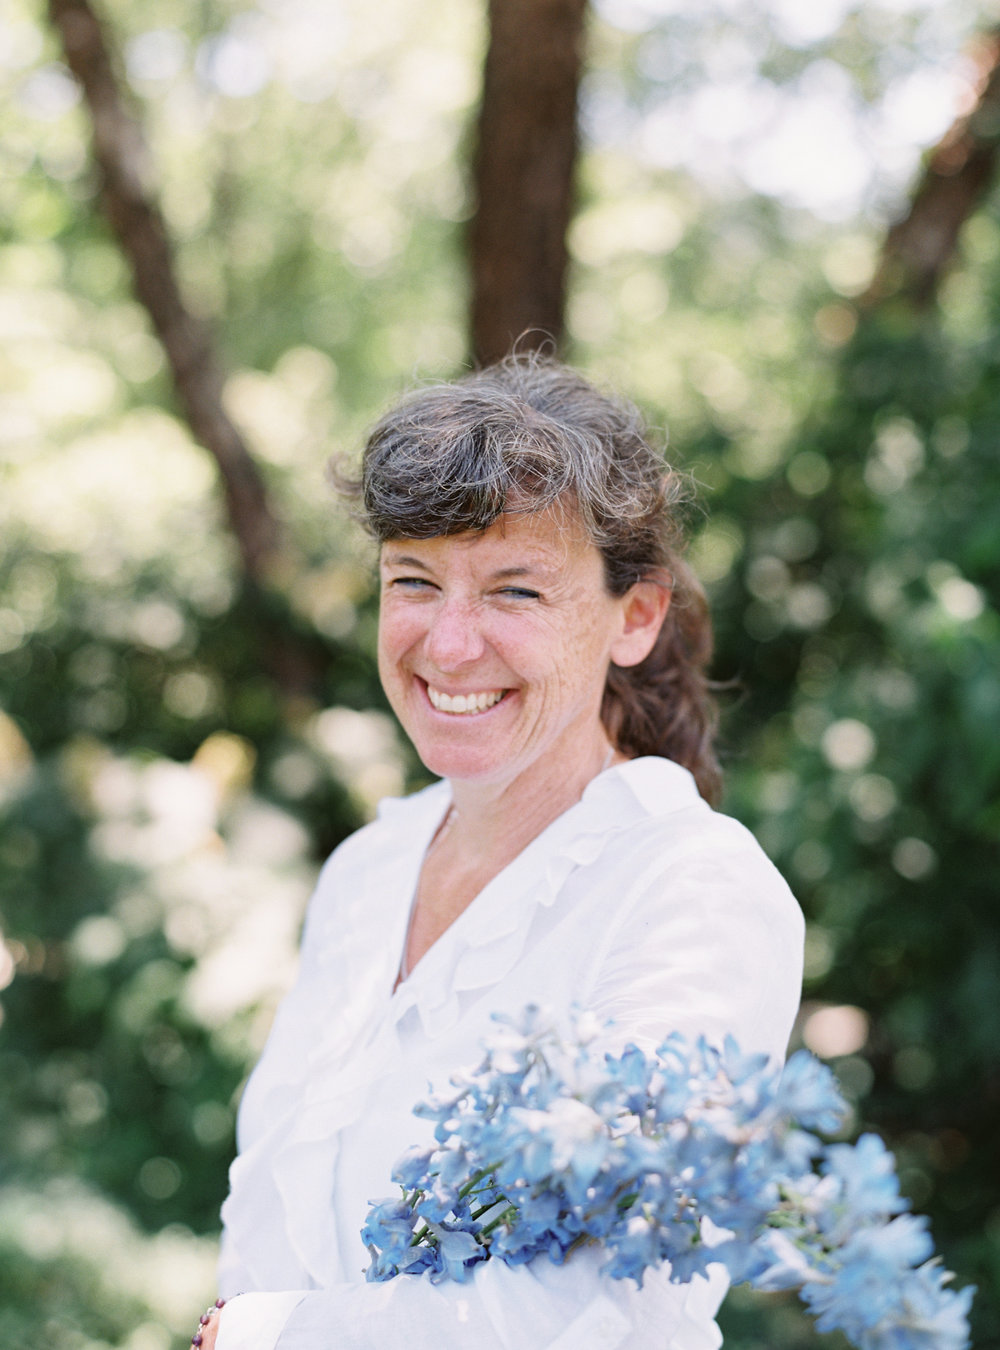 Want to know a little more About kathleen? - Meet Kathleen Murphy, proprietor of Primrose Hill Flower Company. Kathleen has been a professional gardener for over 30 years and has operated a garden nursery specializing in heirloom annuals and perennials since 1994. Kathleen is truly an expert in her field and we are so pleased to welcome her at Team Flower.